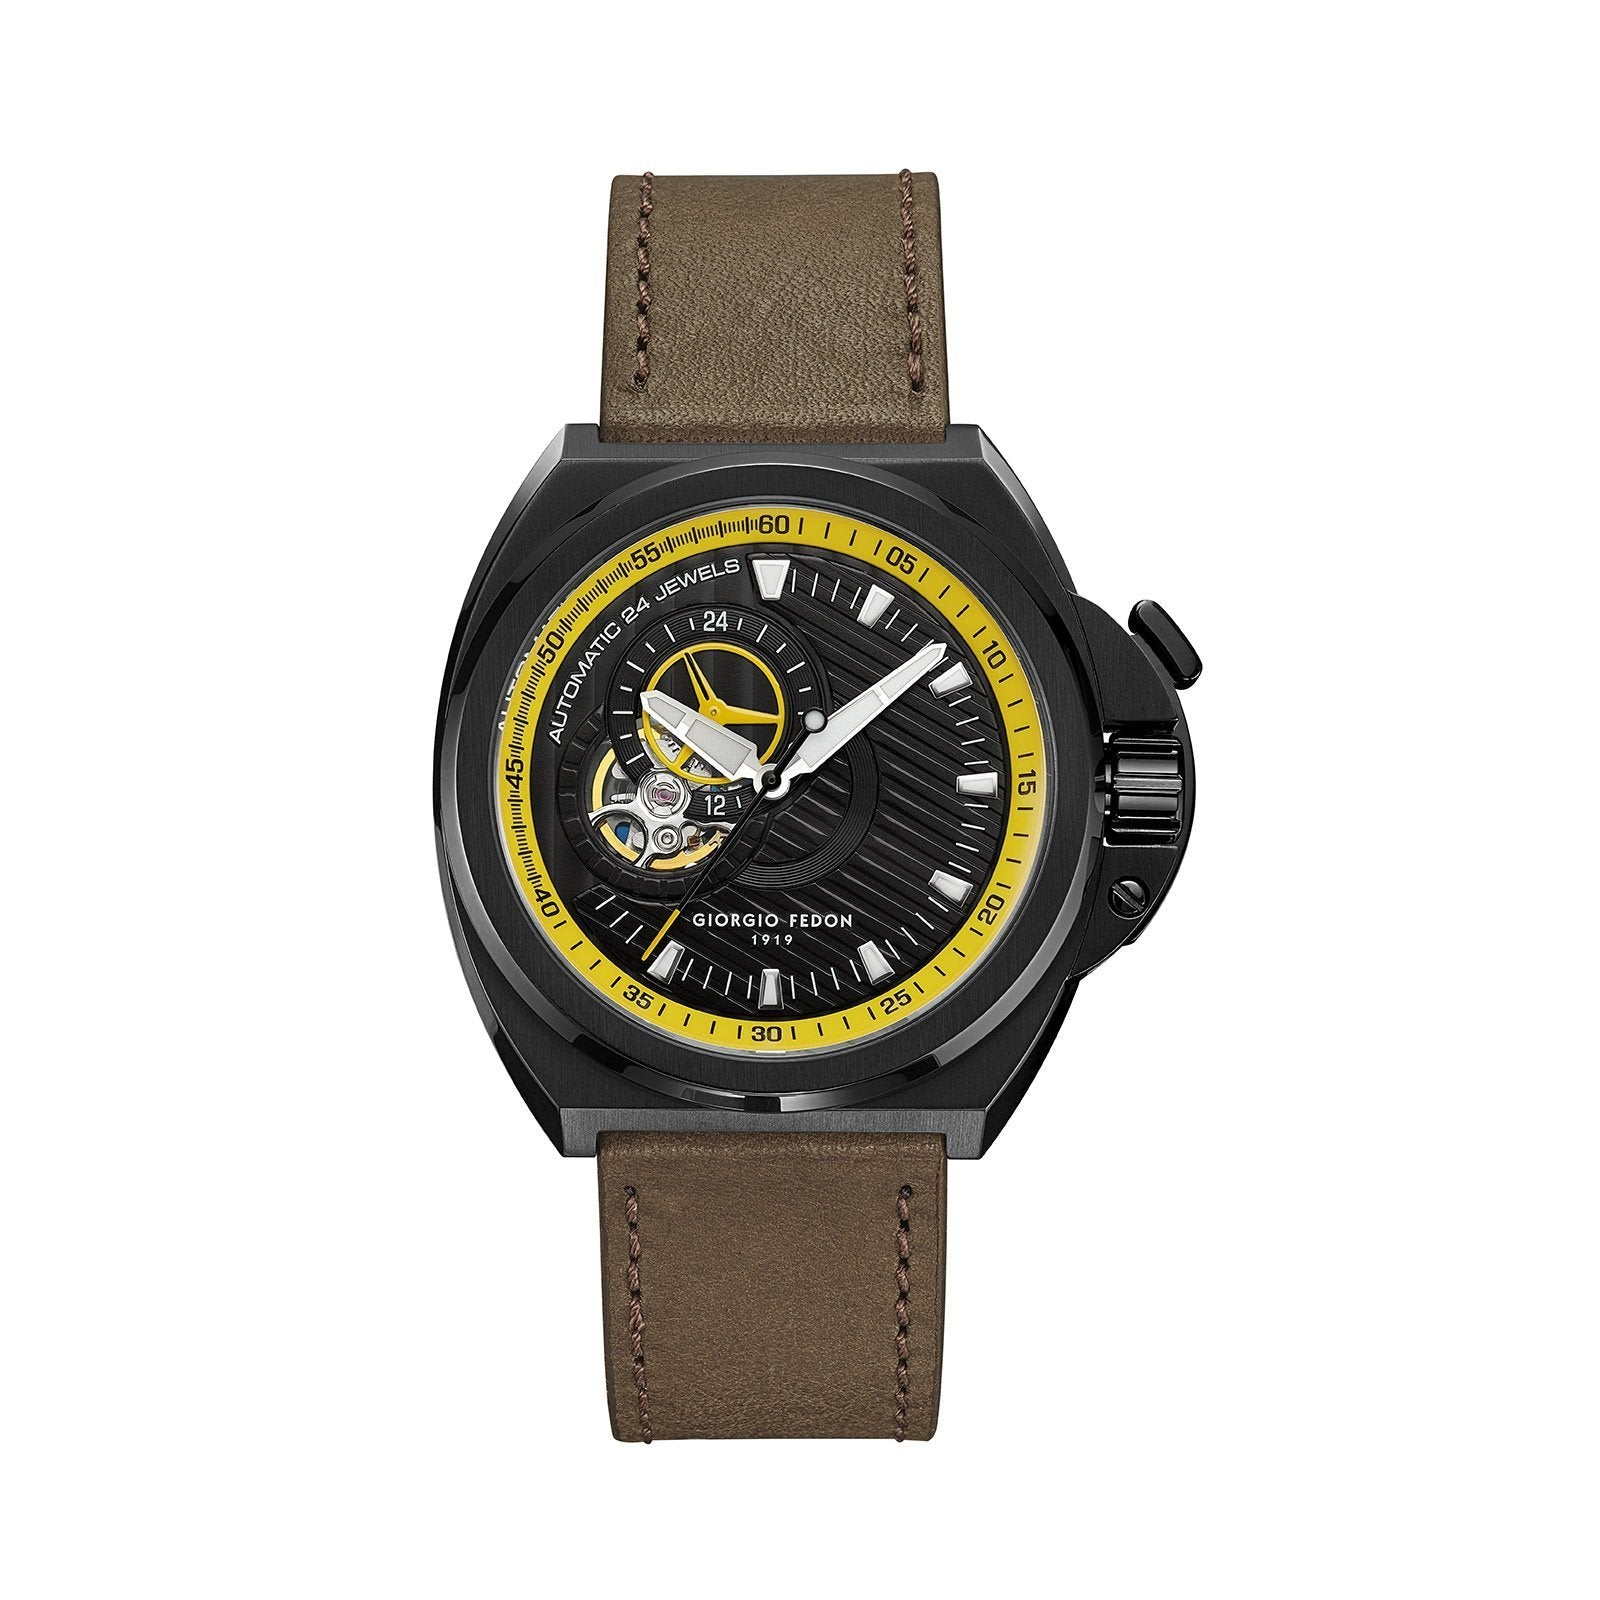 Giorgio Fedon Skywalker Yellow Black PVD - Watches & Crystals